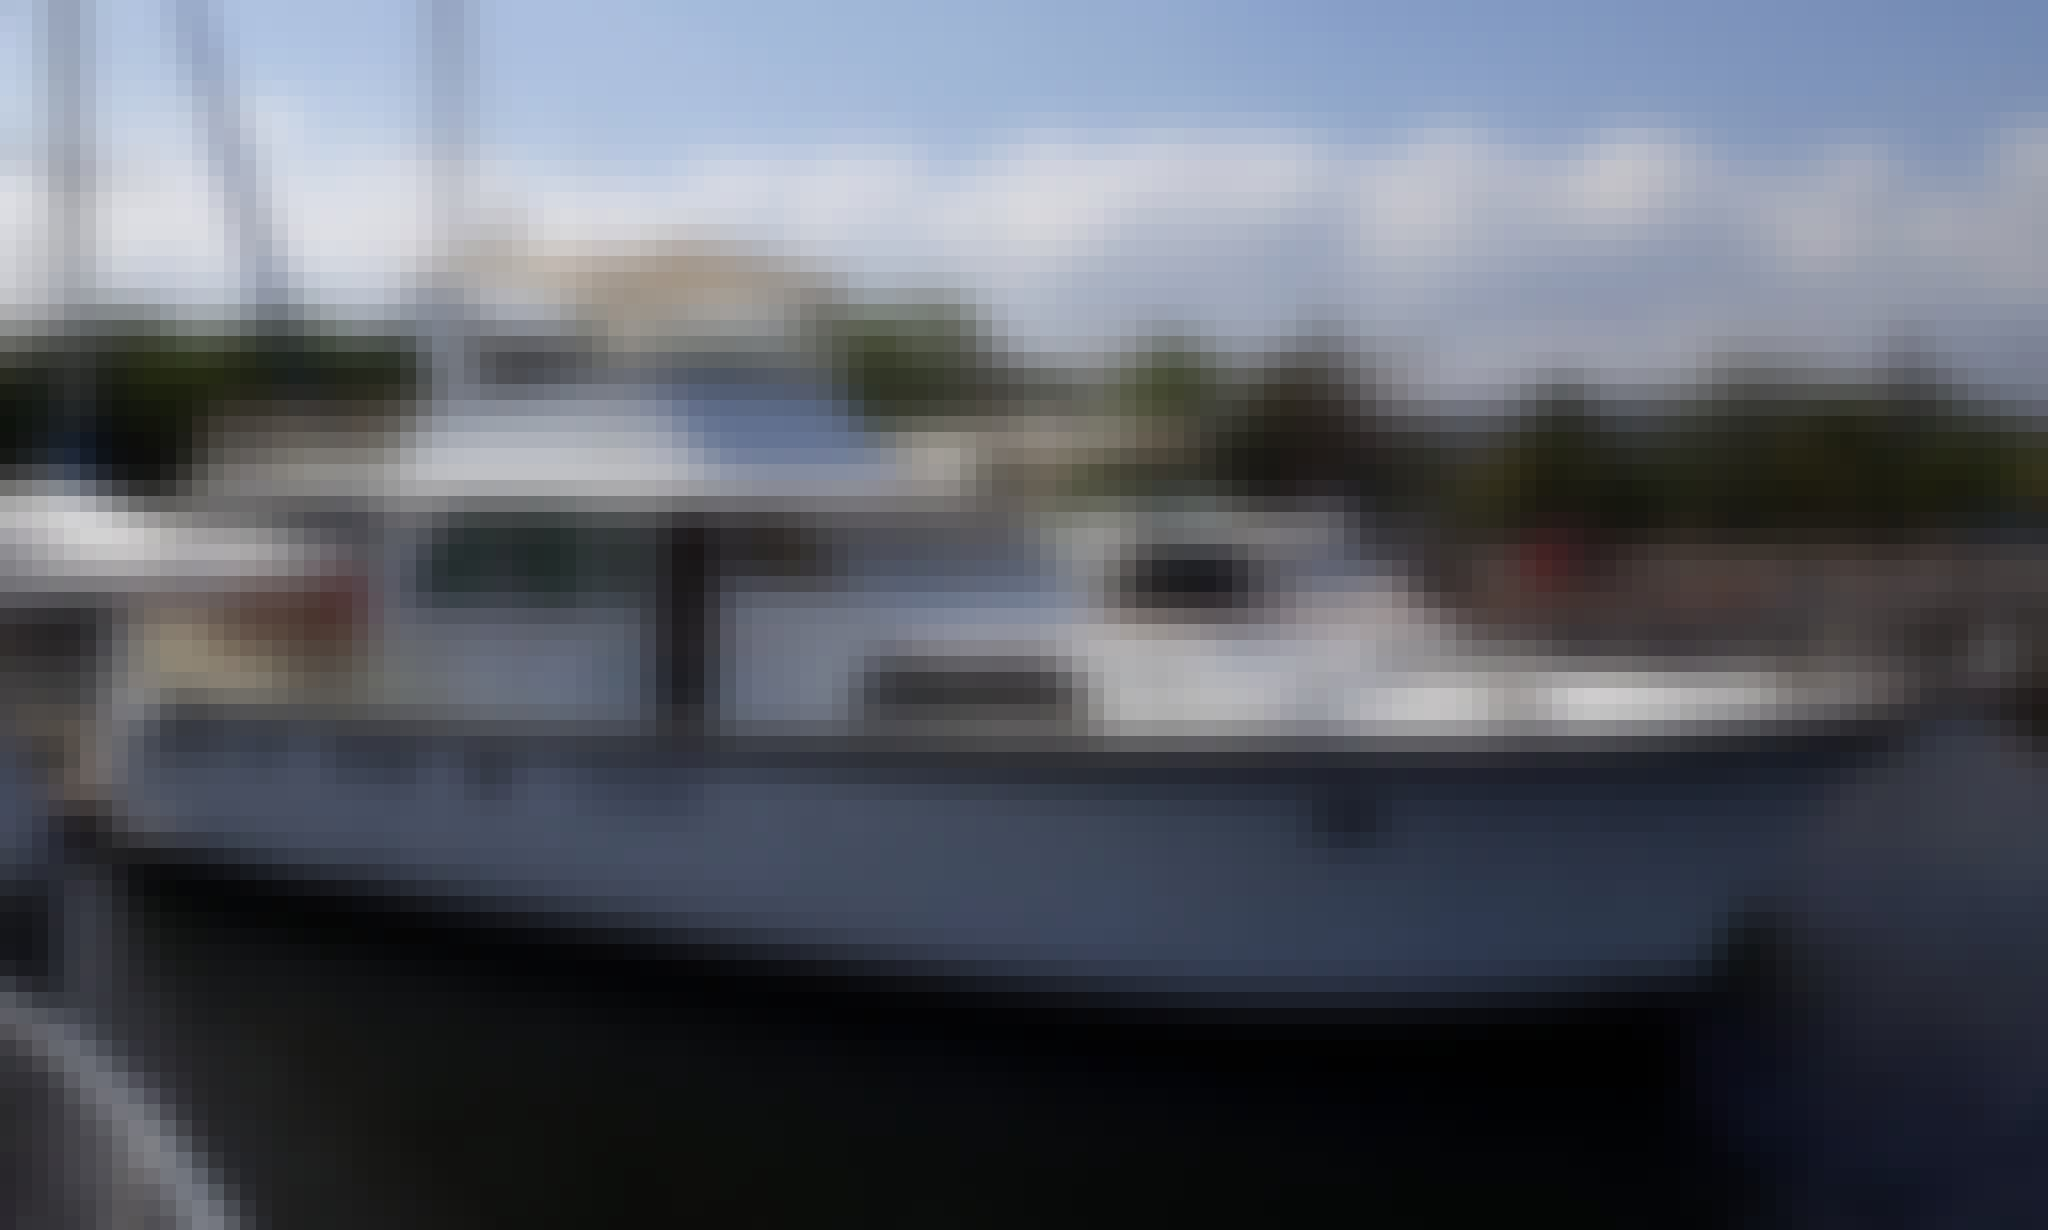 Charter a leasure Yacht in Olongapo, Philippines